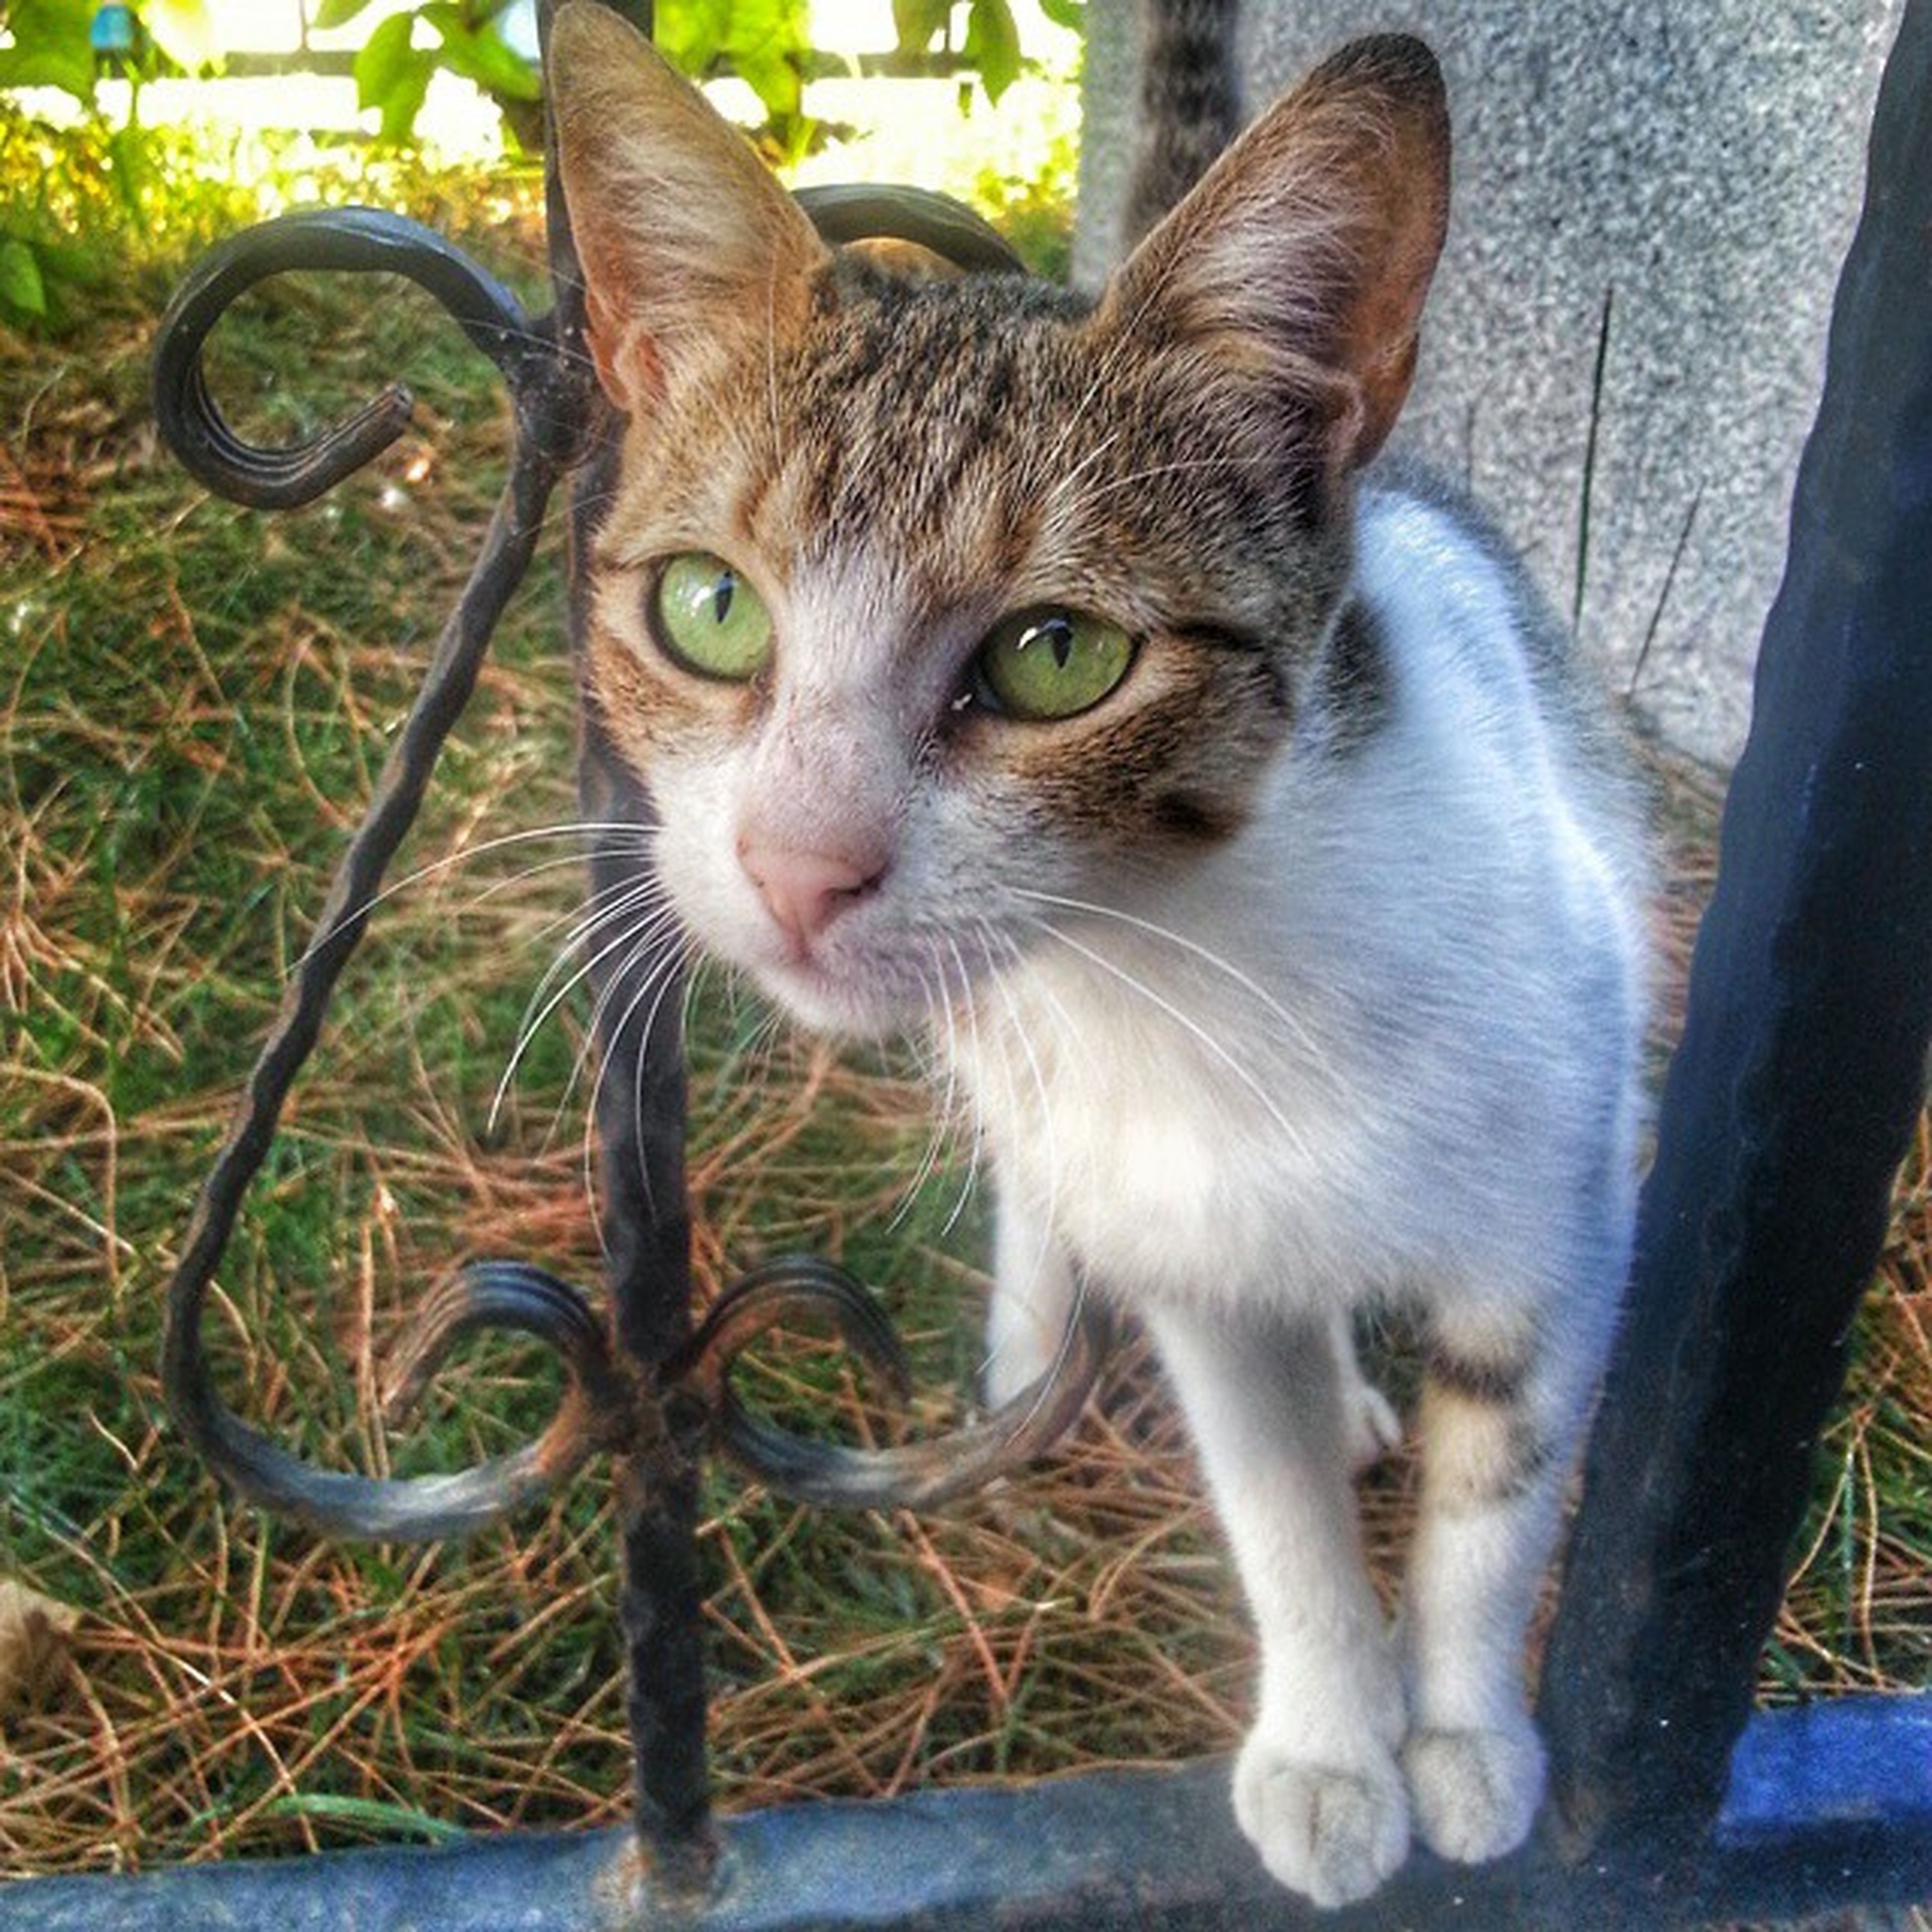 domestic cat, one animal, domestic animals, cat, mammal, pets, animal themes, feline, looking at camera, portrait, whisker, front view, sitting, close-up, day, staring, outdoors, alertness, grass, no people